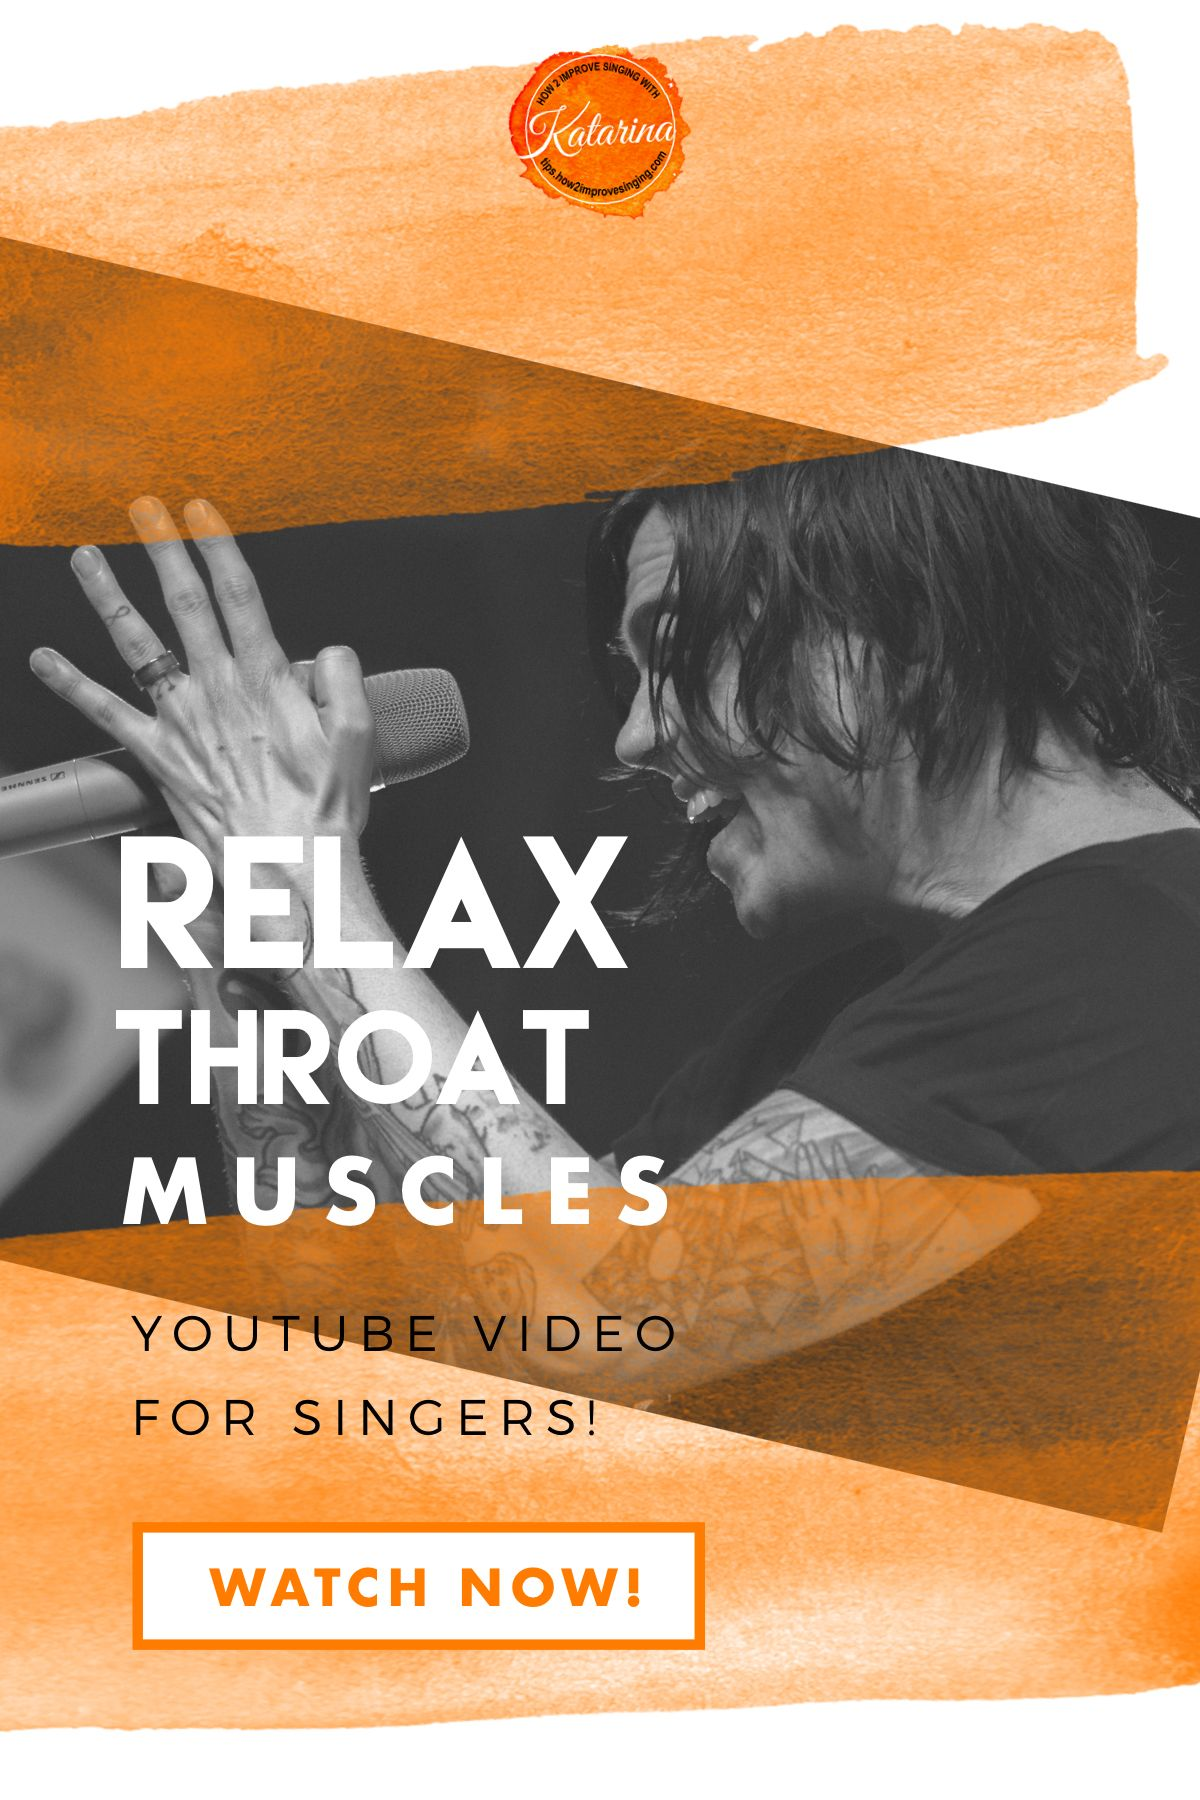 5 tips on how to relax throat muscles and sing without